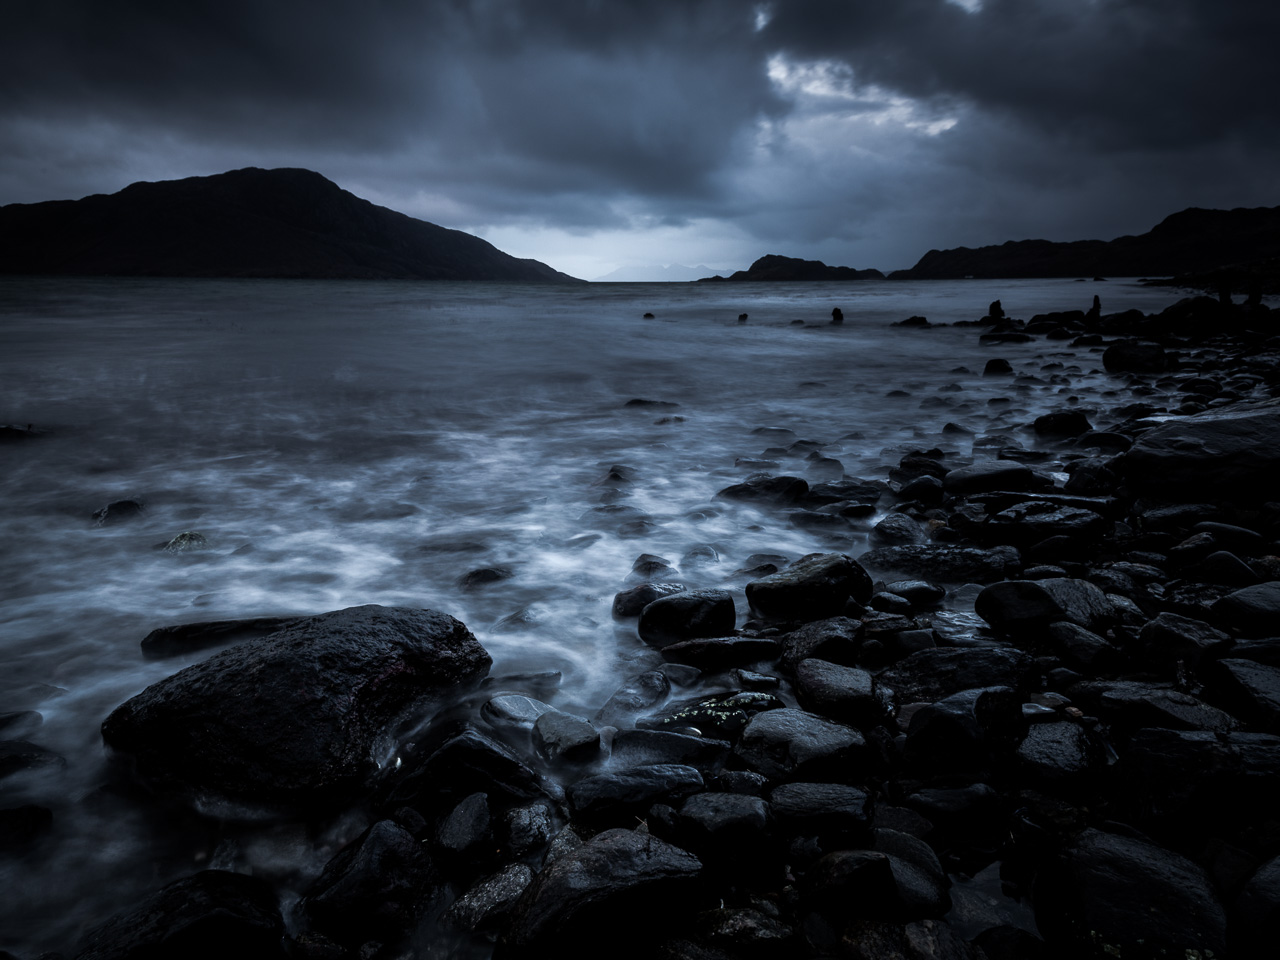 One of my favourite images from the trip. I love the overall dark mood with that hint of brightness drawing the eye towards the Rum Cuillins in the distance.